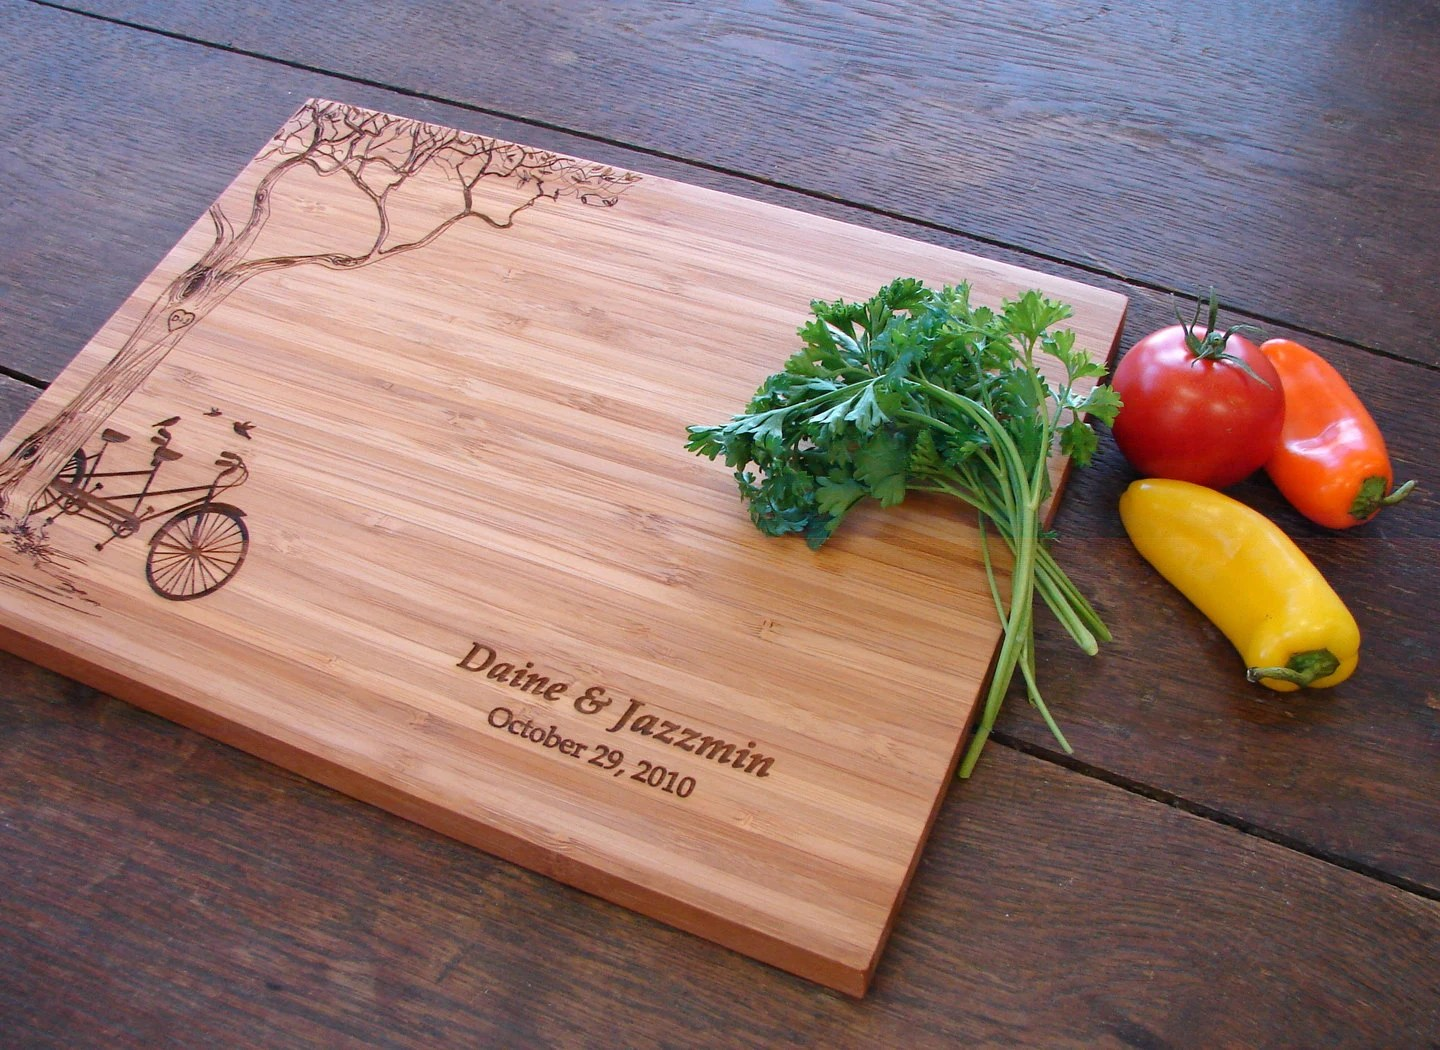 I Use This Cutting Board Periodically Personalized Cutting Board With Tree And Tandem Bike